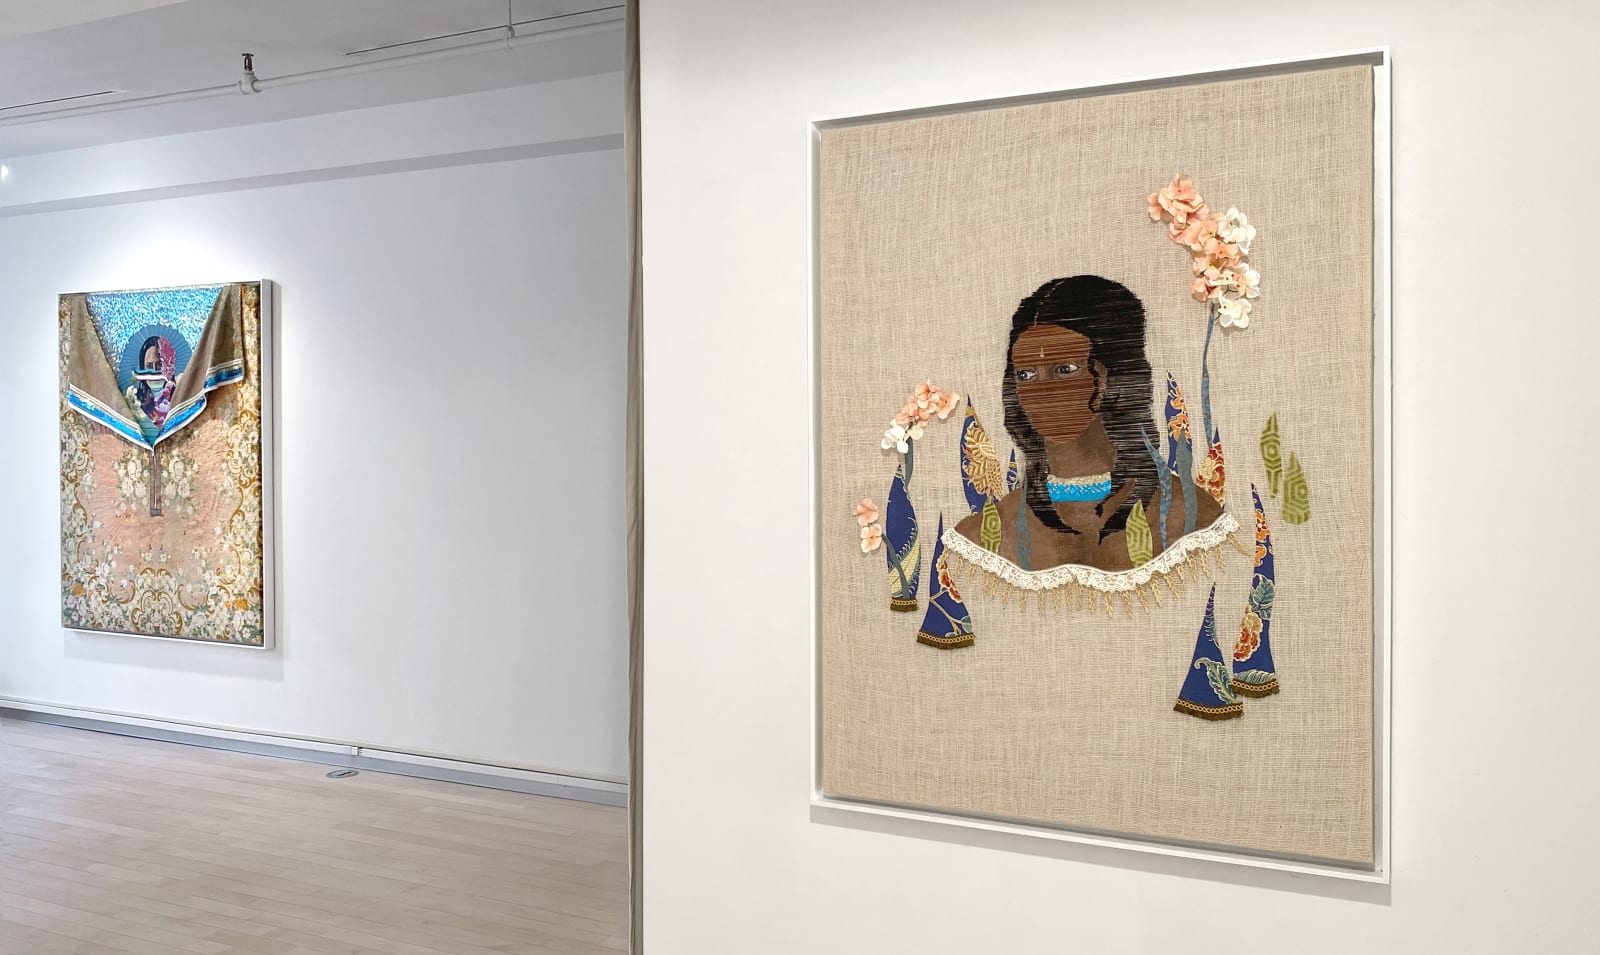 Installation view: History Reclaimed: Suchitra Mattai and Adrienne Elise Tarver